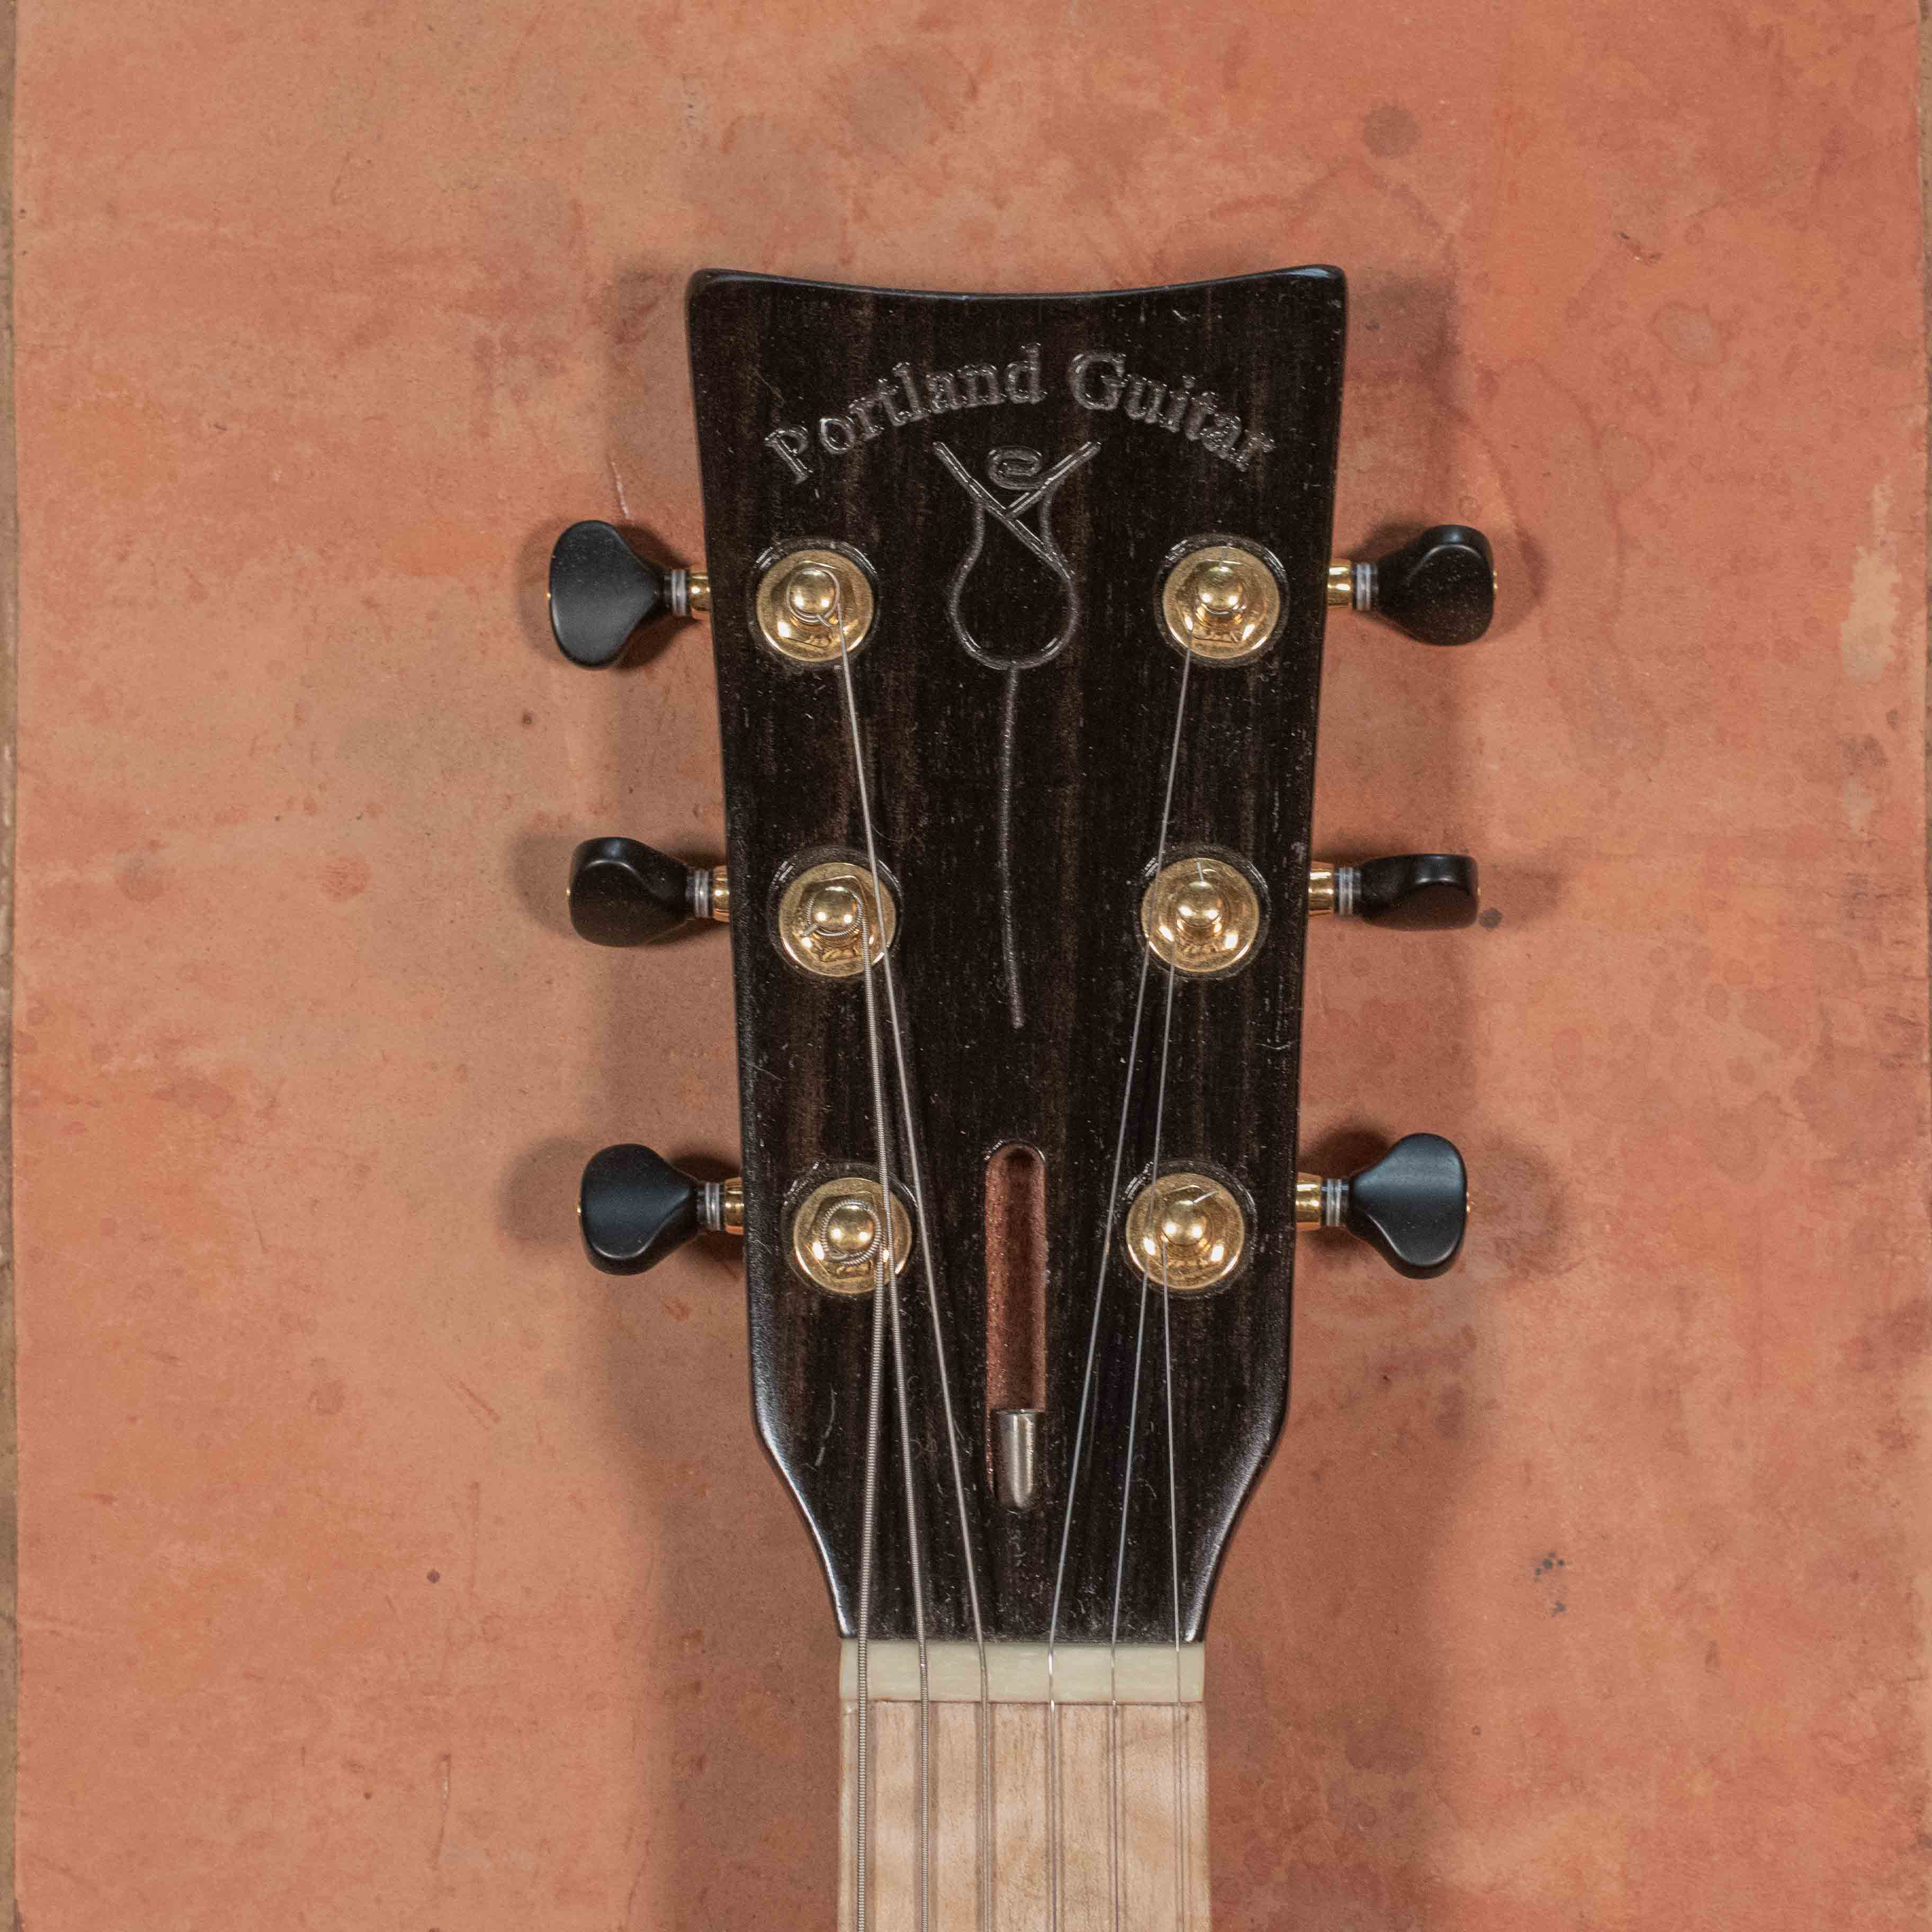 The logo of Portland Guitar. A rose on a guitar headstock with black tuners.